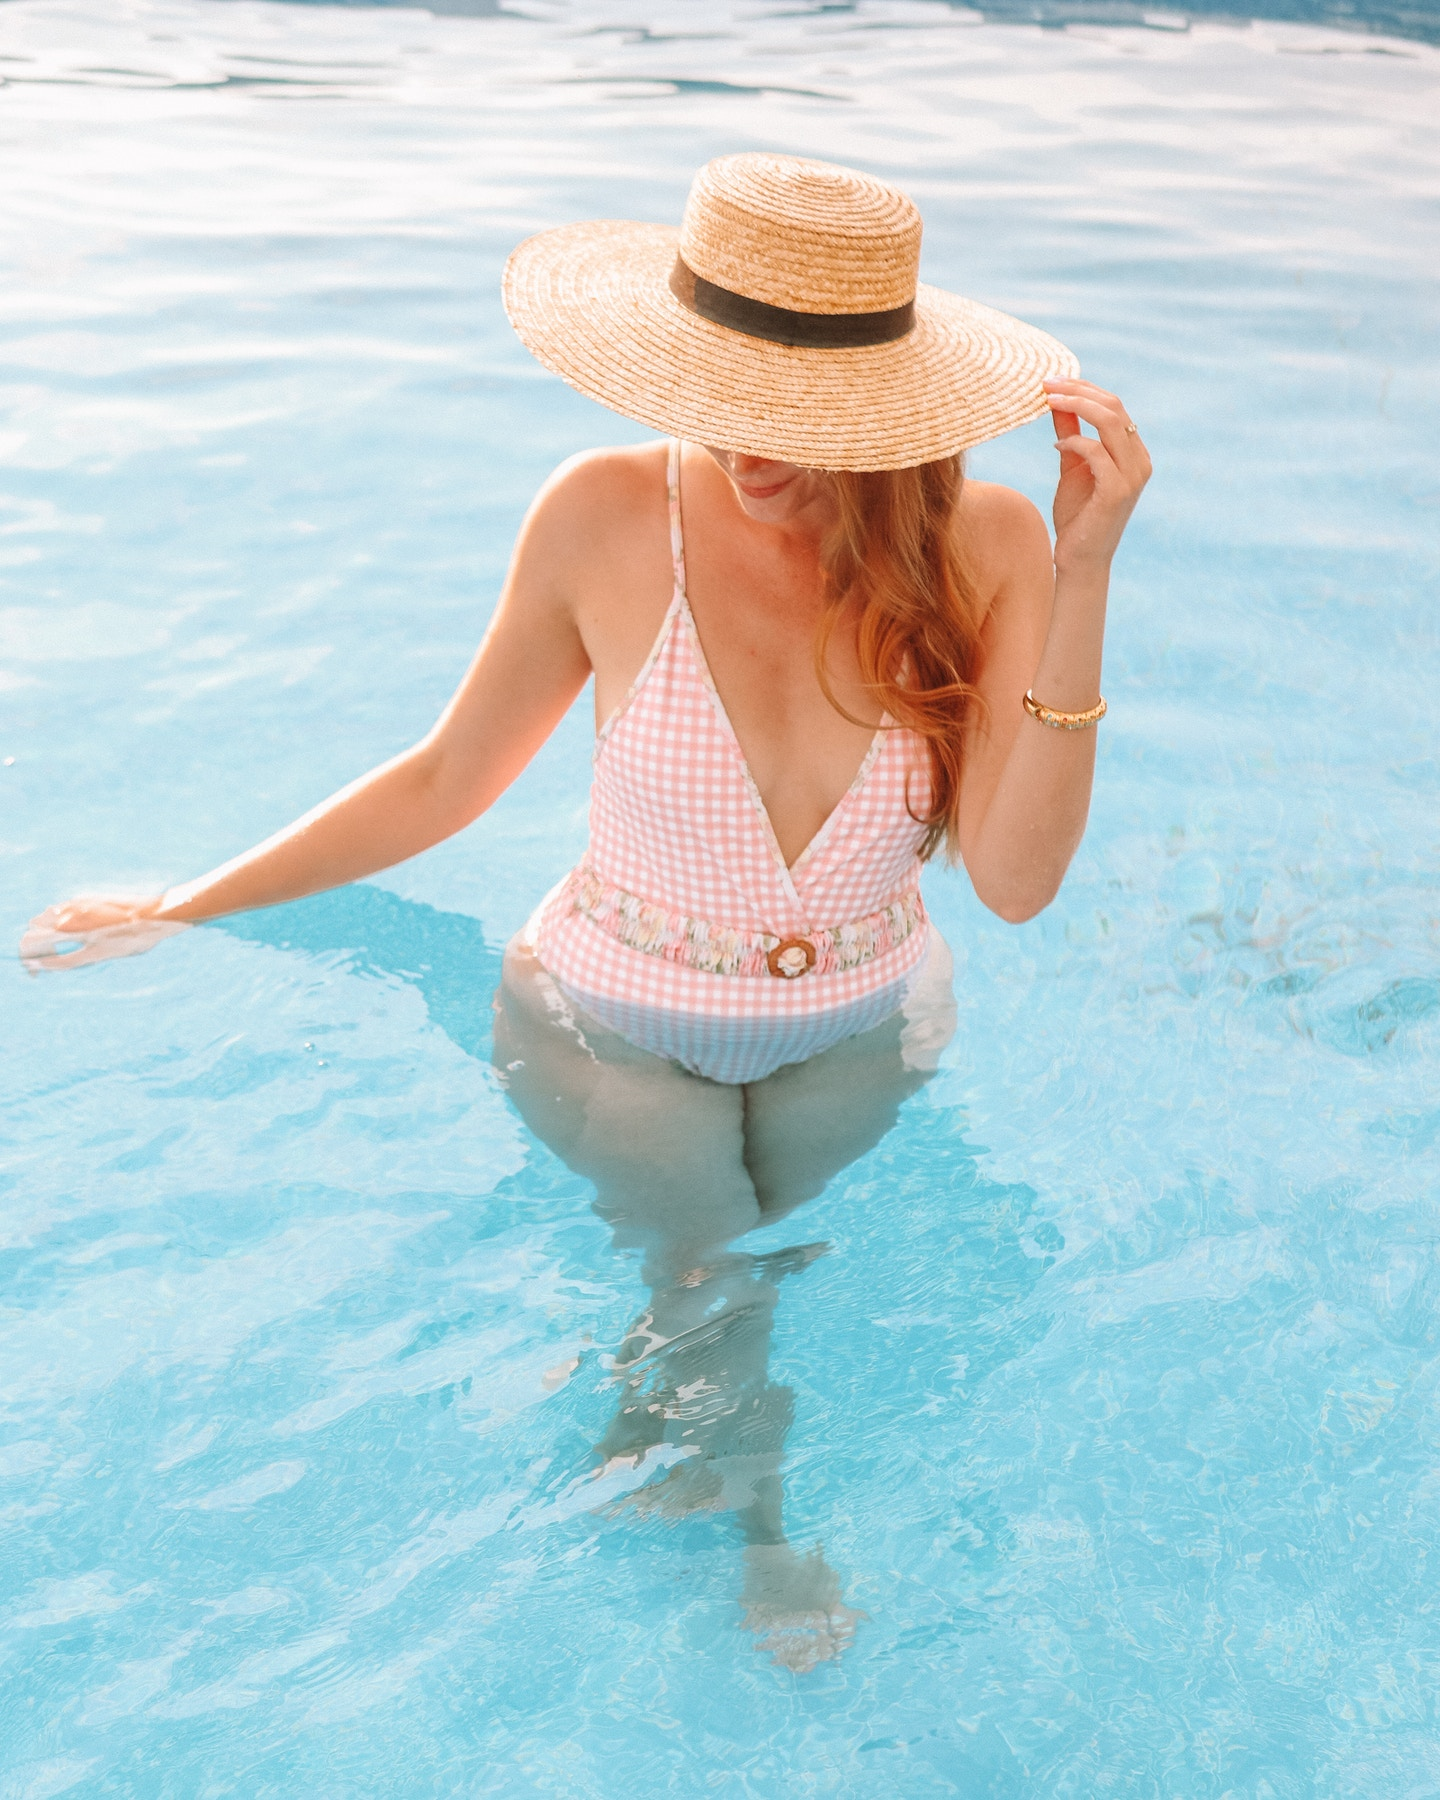 The Best Pieces from Revolve: Revolve Tularosa Mirian One Piece